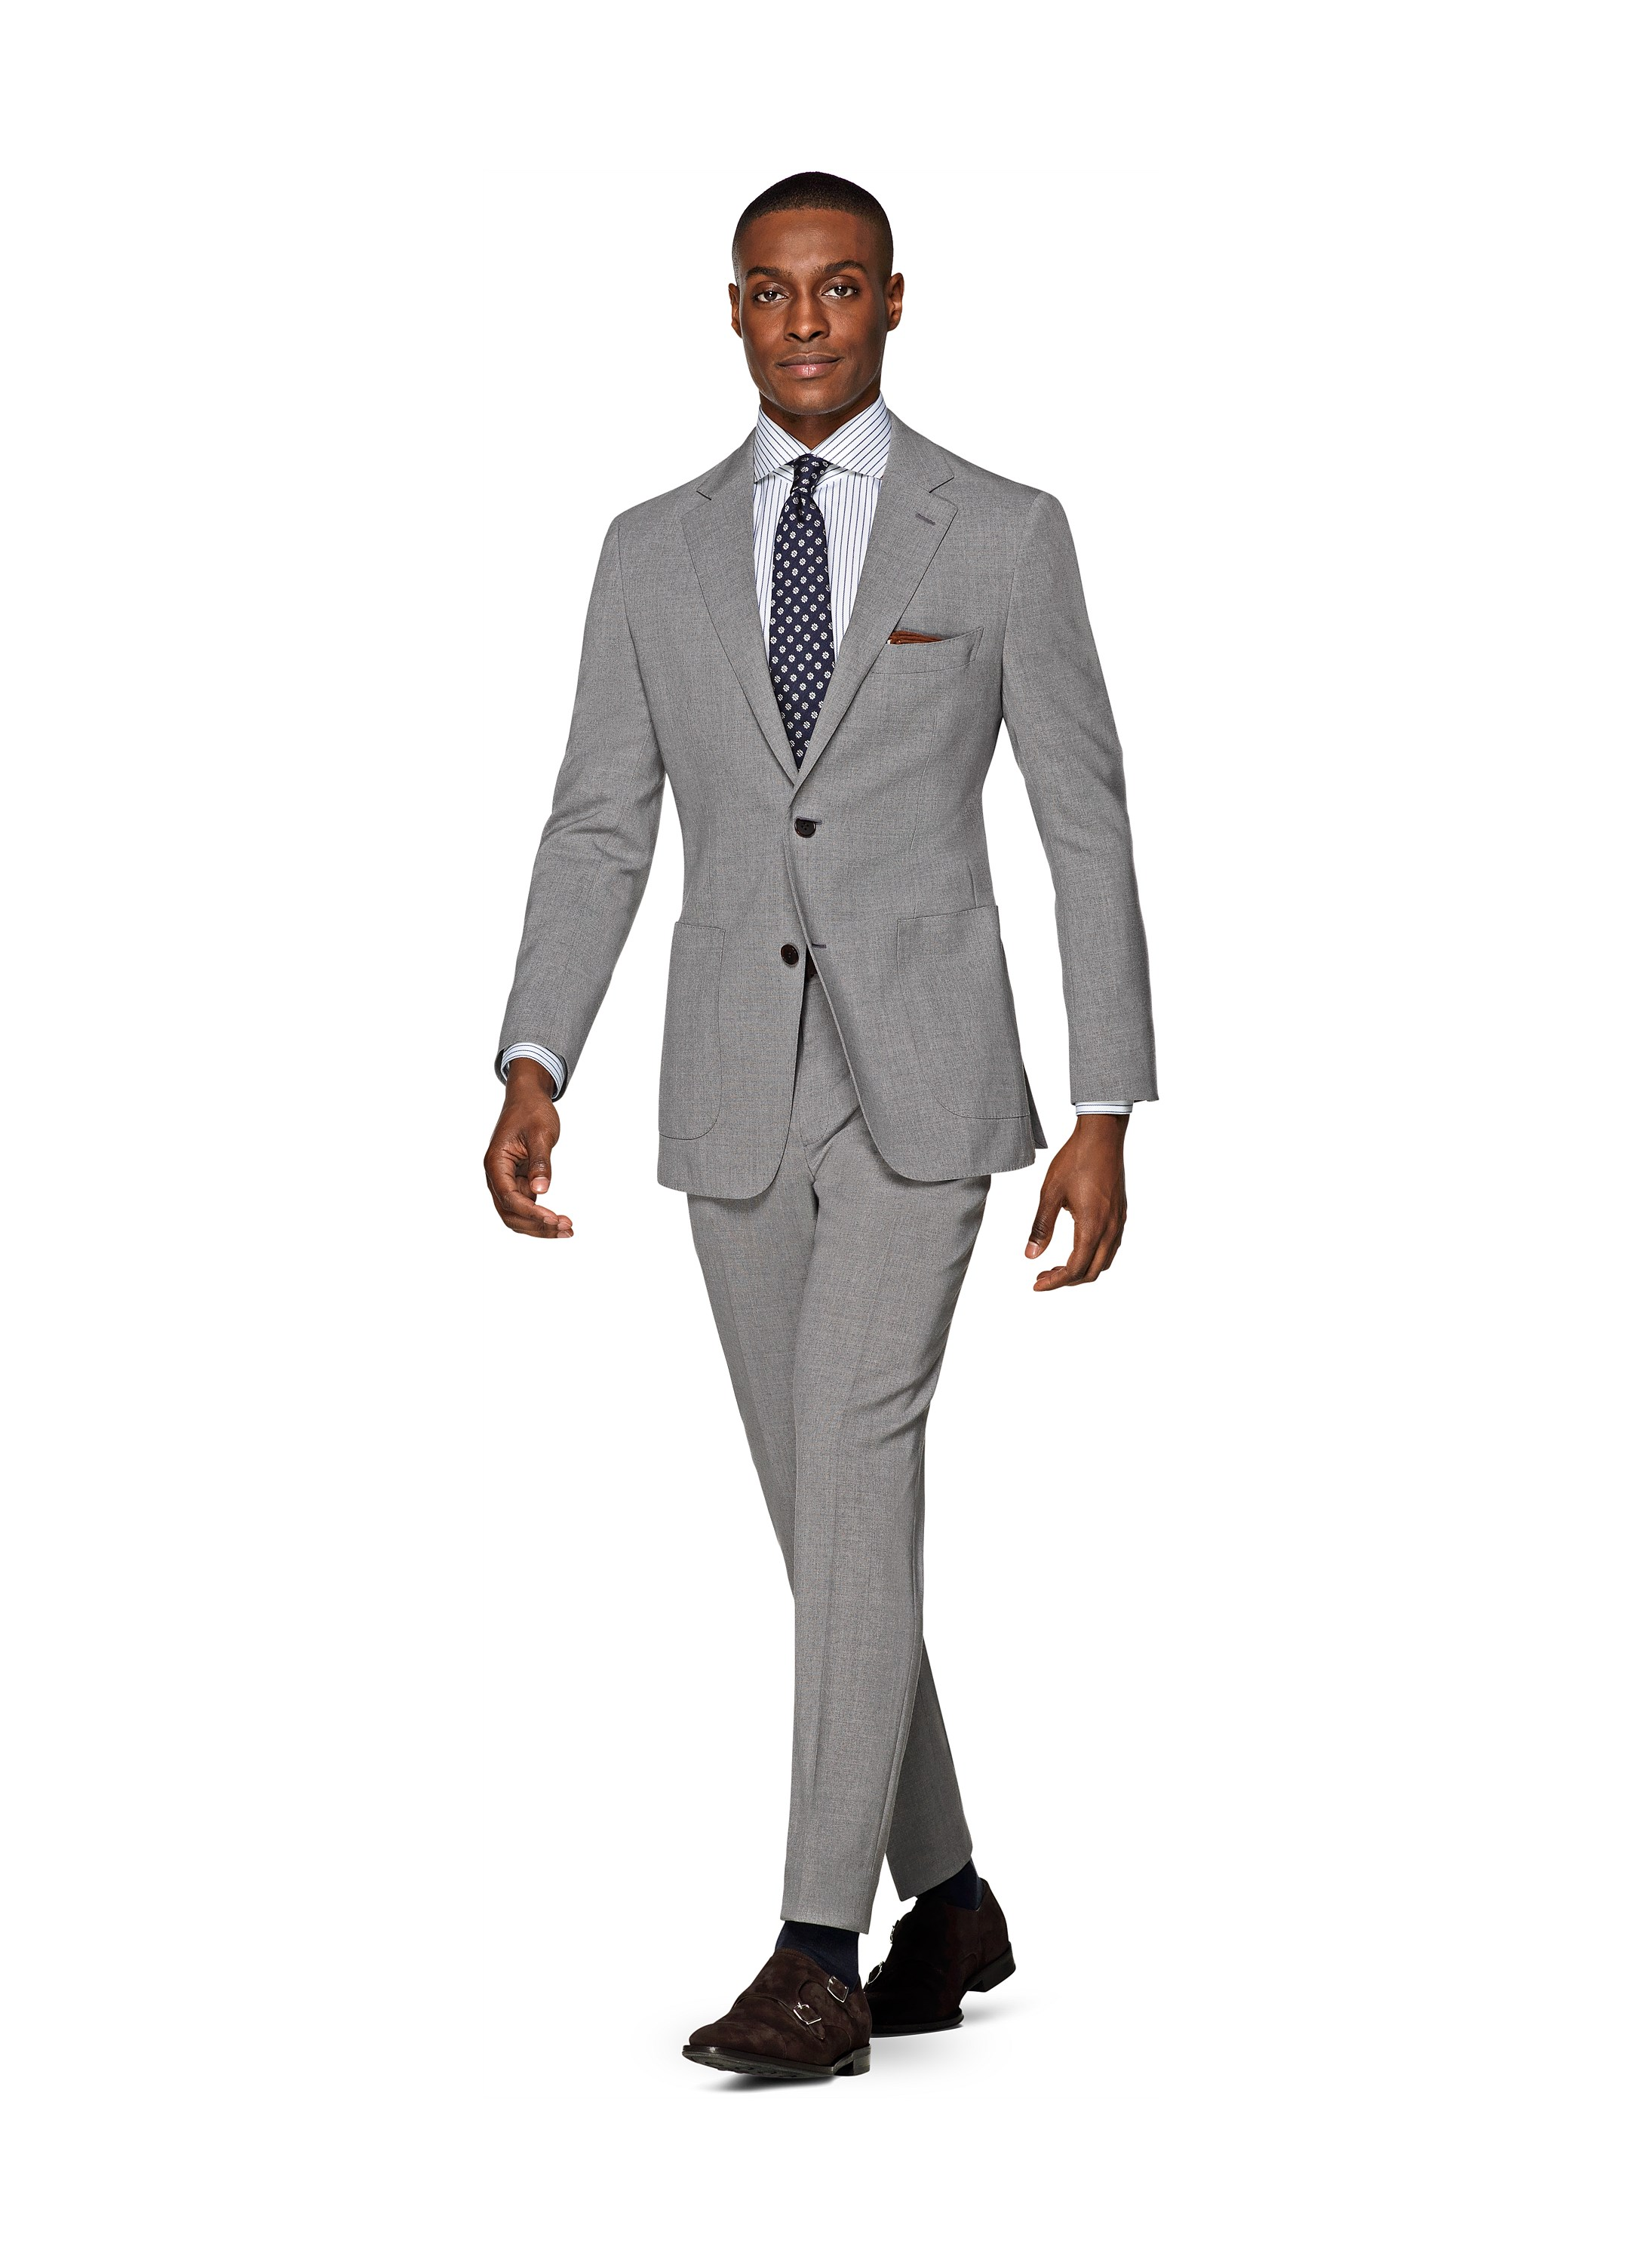 Suits_Light_Grey_Plain_Havana_Traveler_Unlined_P5184_Suitsupply_Online_Store_10.jpg